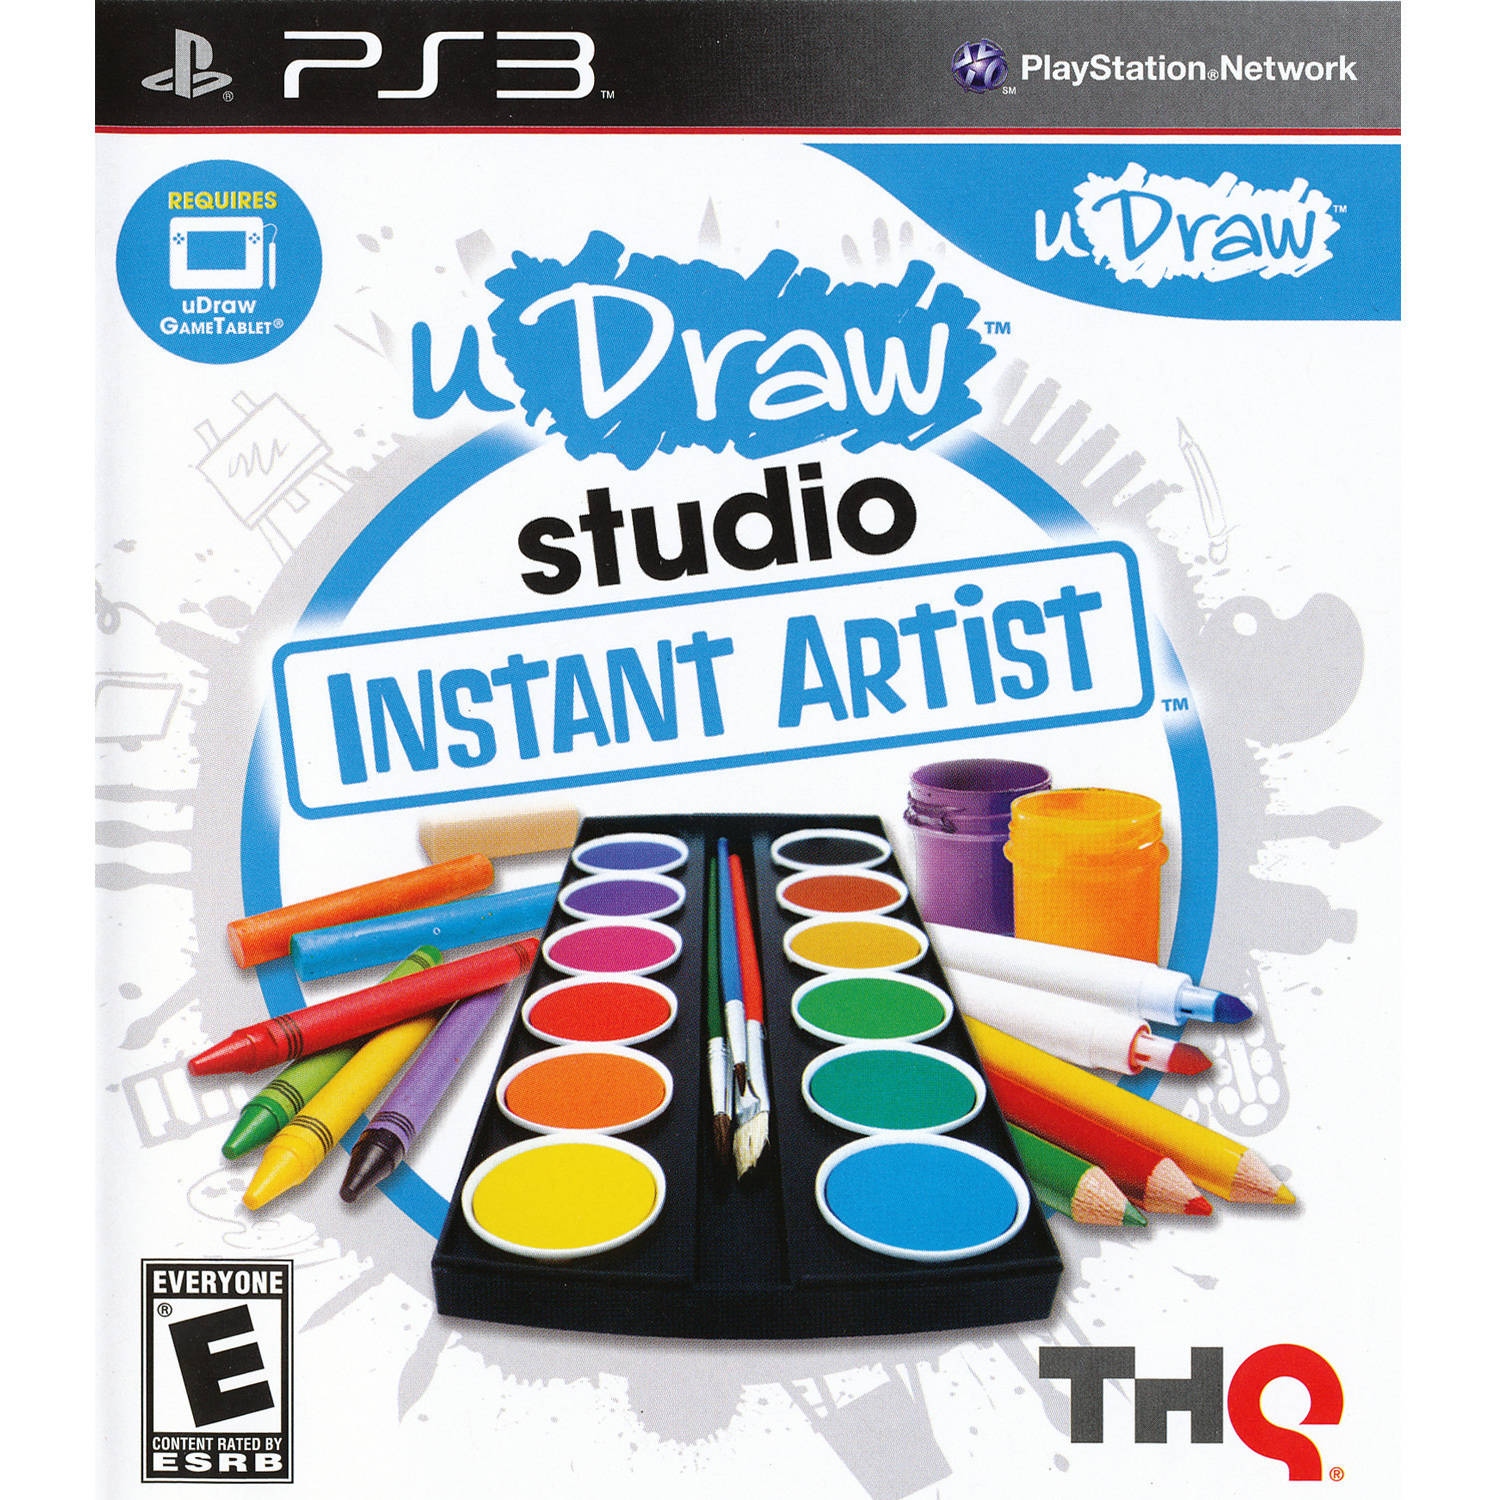 Udraw Studio: Instant Artist (PS3) - Pre-Owned - Game Only